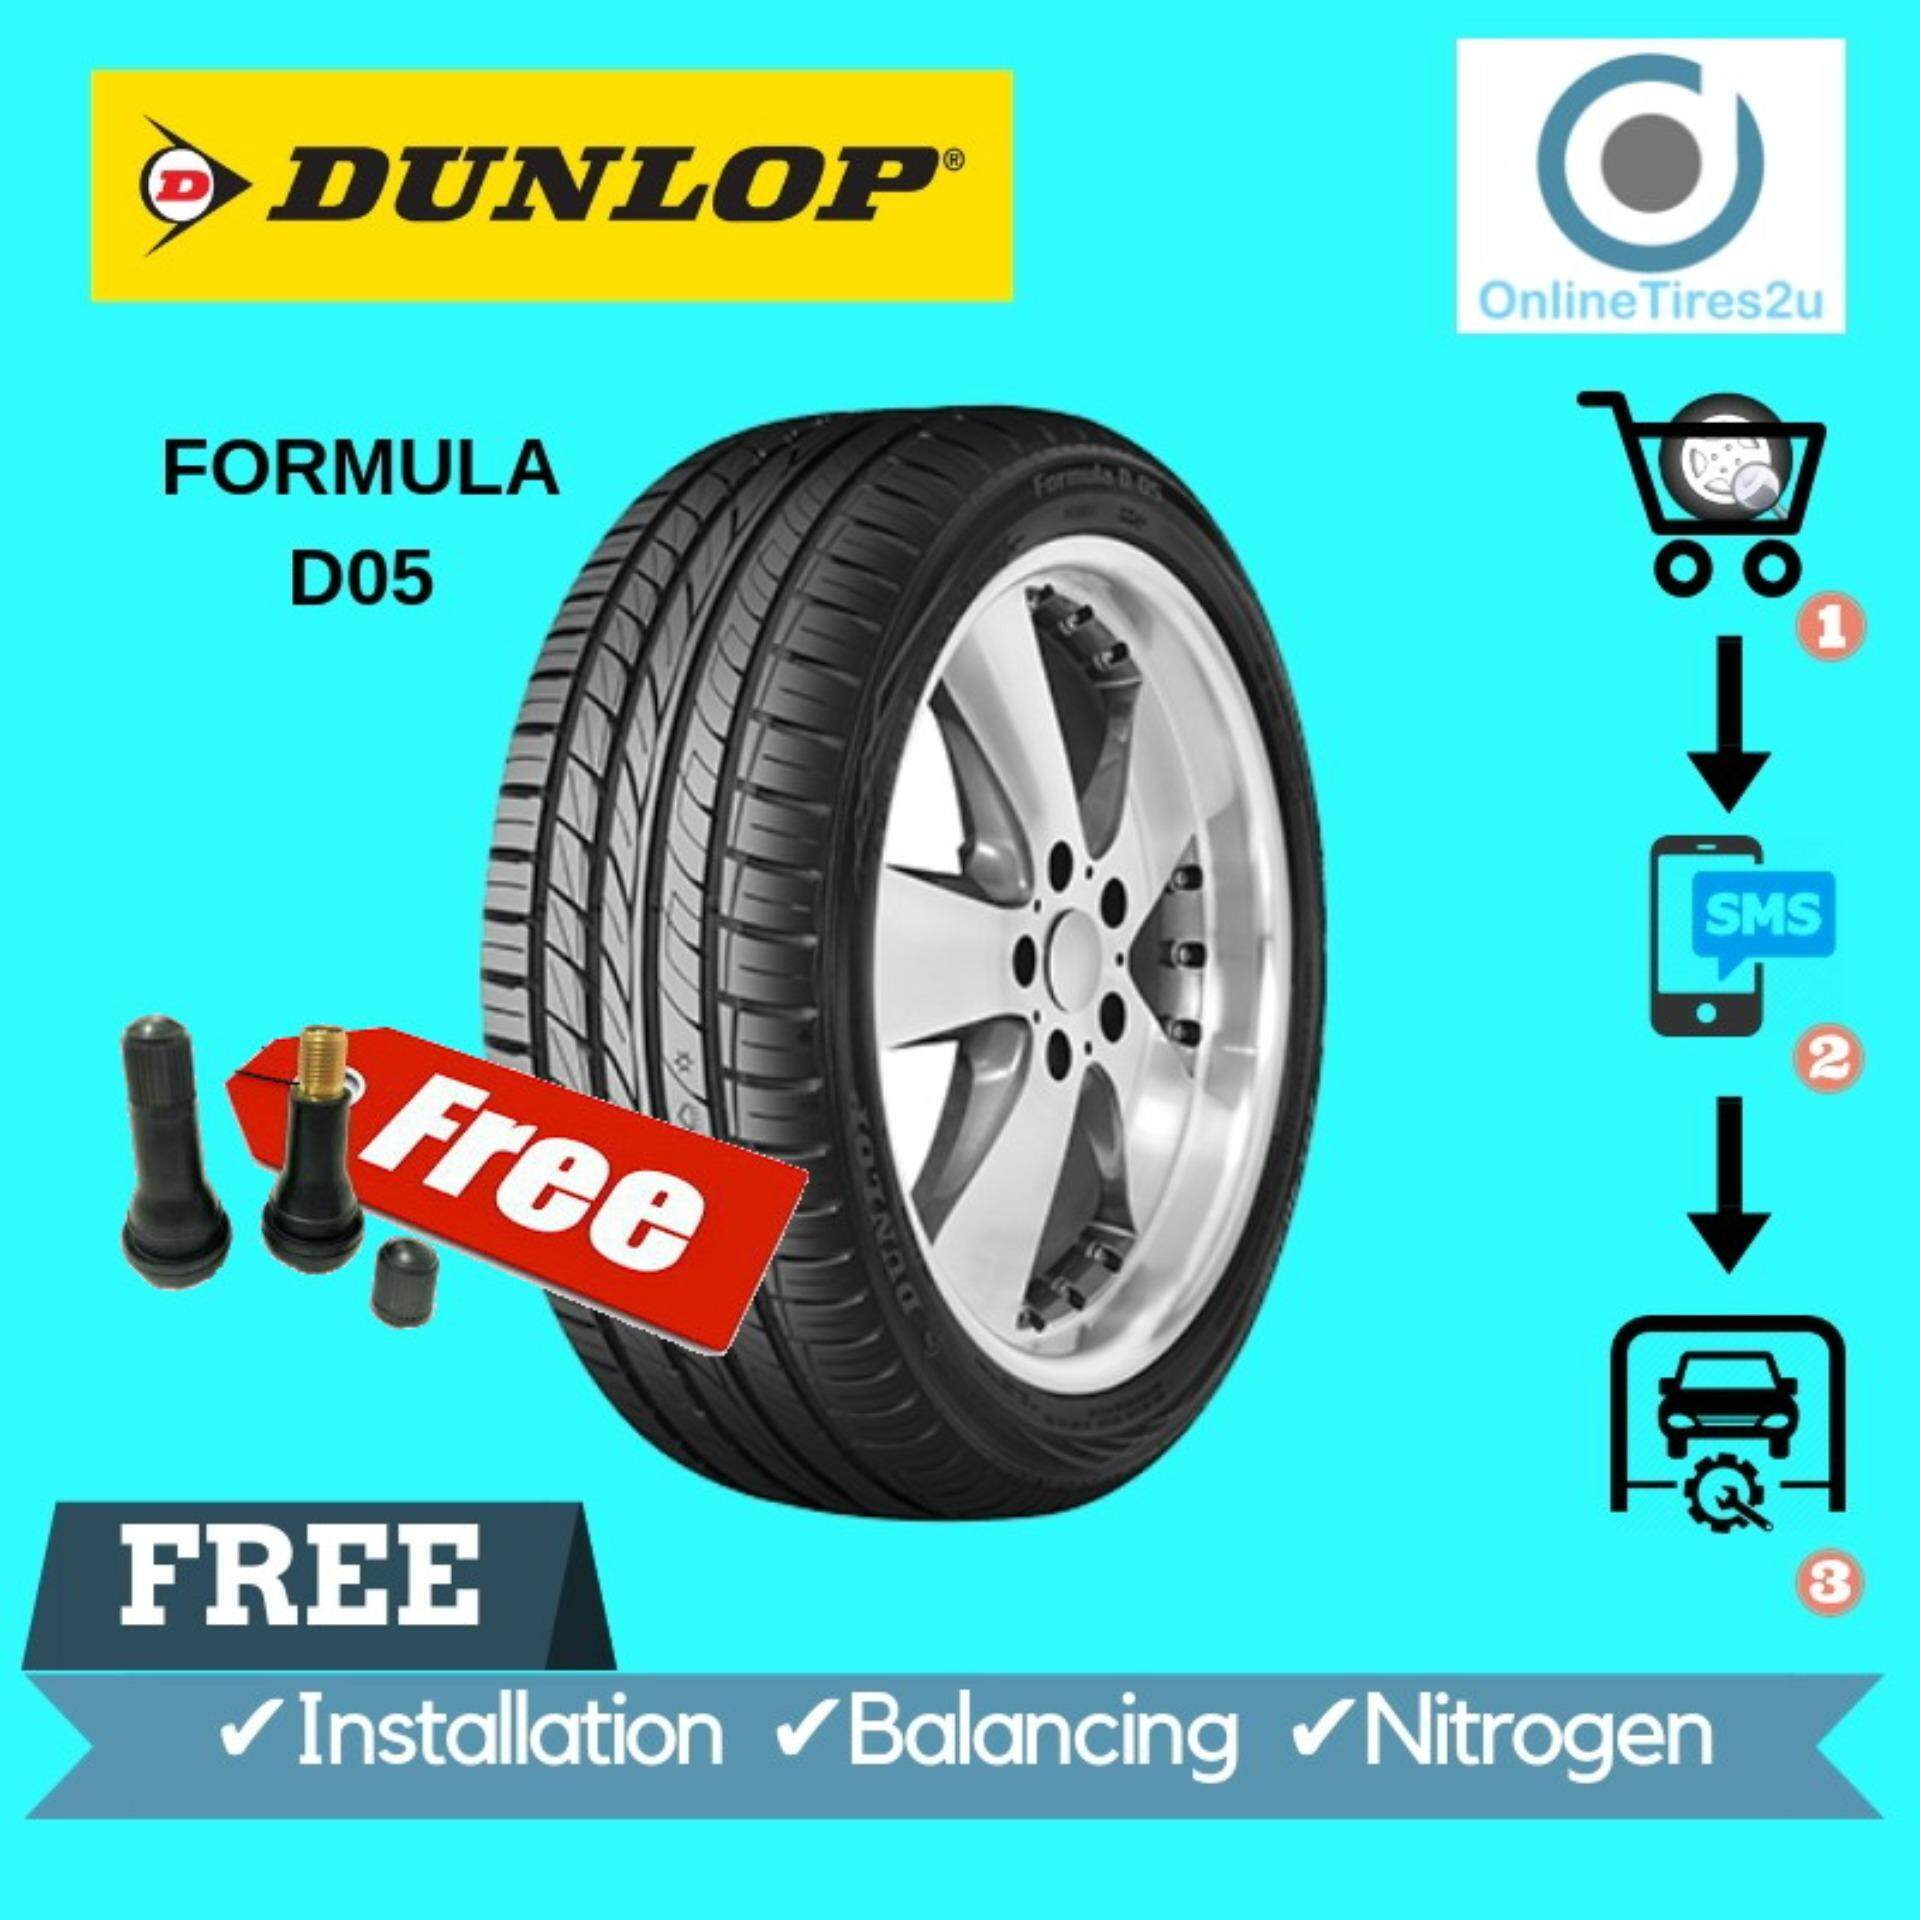 Dunlop Formula D05 - 195/55r15 (with Installation) By Onlinetires2u.